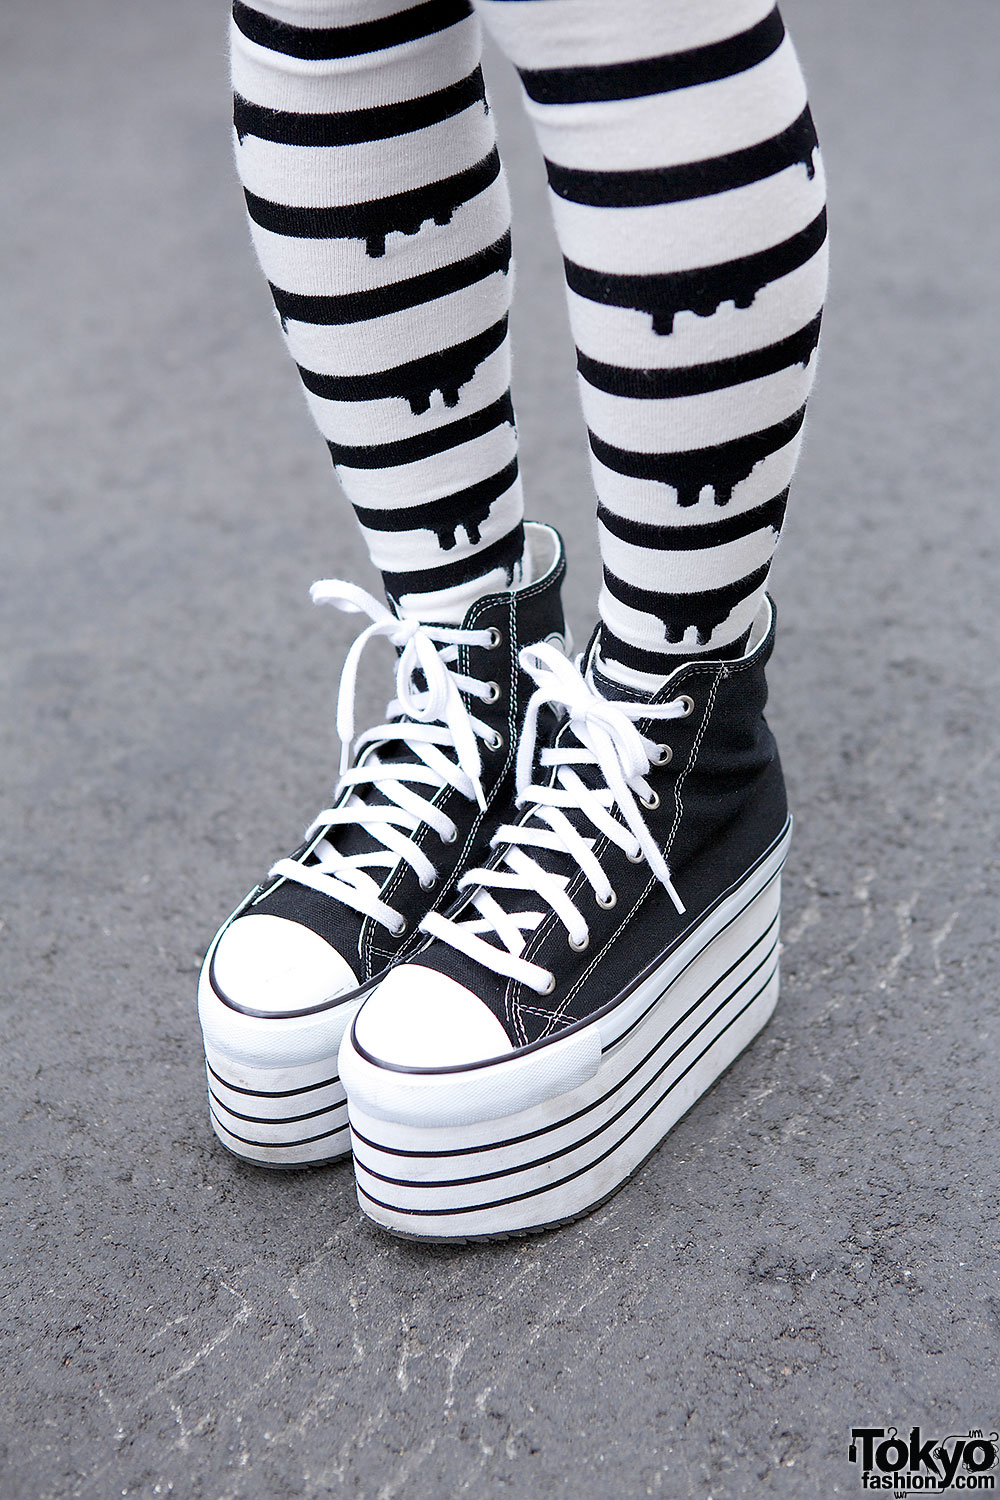 Cat In The Hat Converse Shoes